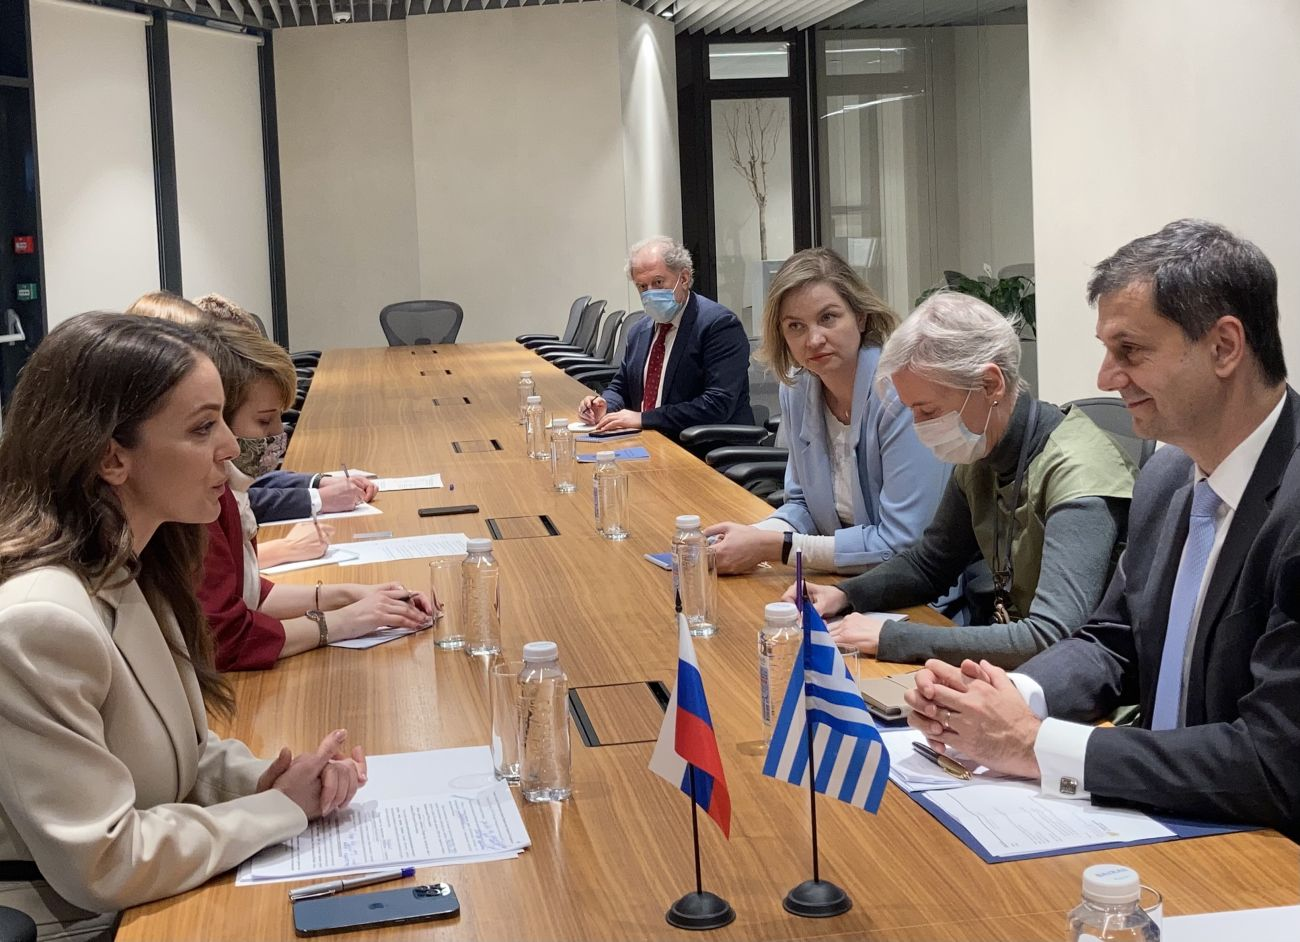 Greek Tourism Minister Harry Theoharis in discussion with the head of Russia's Federal Agency for Tourism, Zarina Valerievna Doguzova.